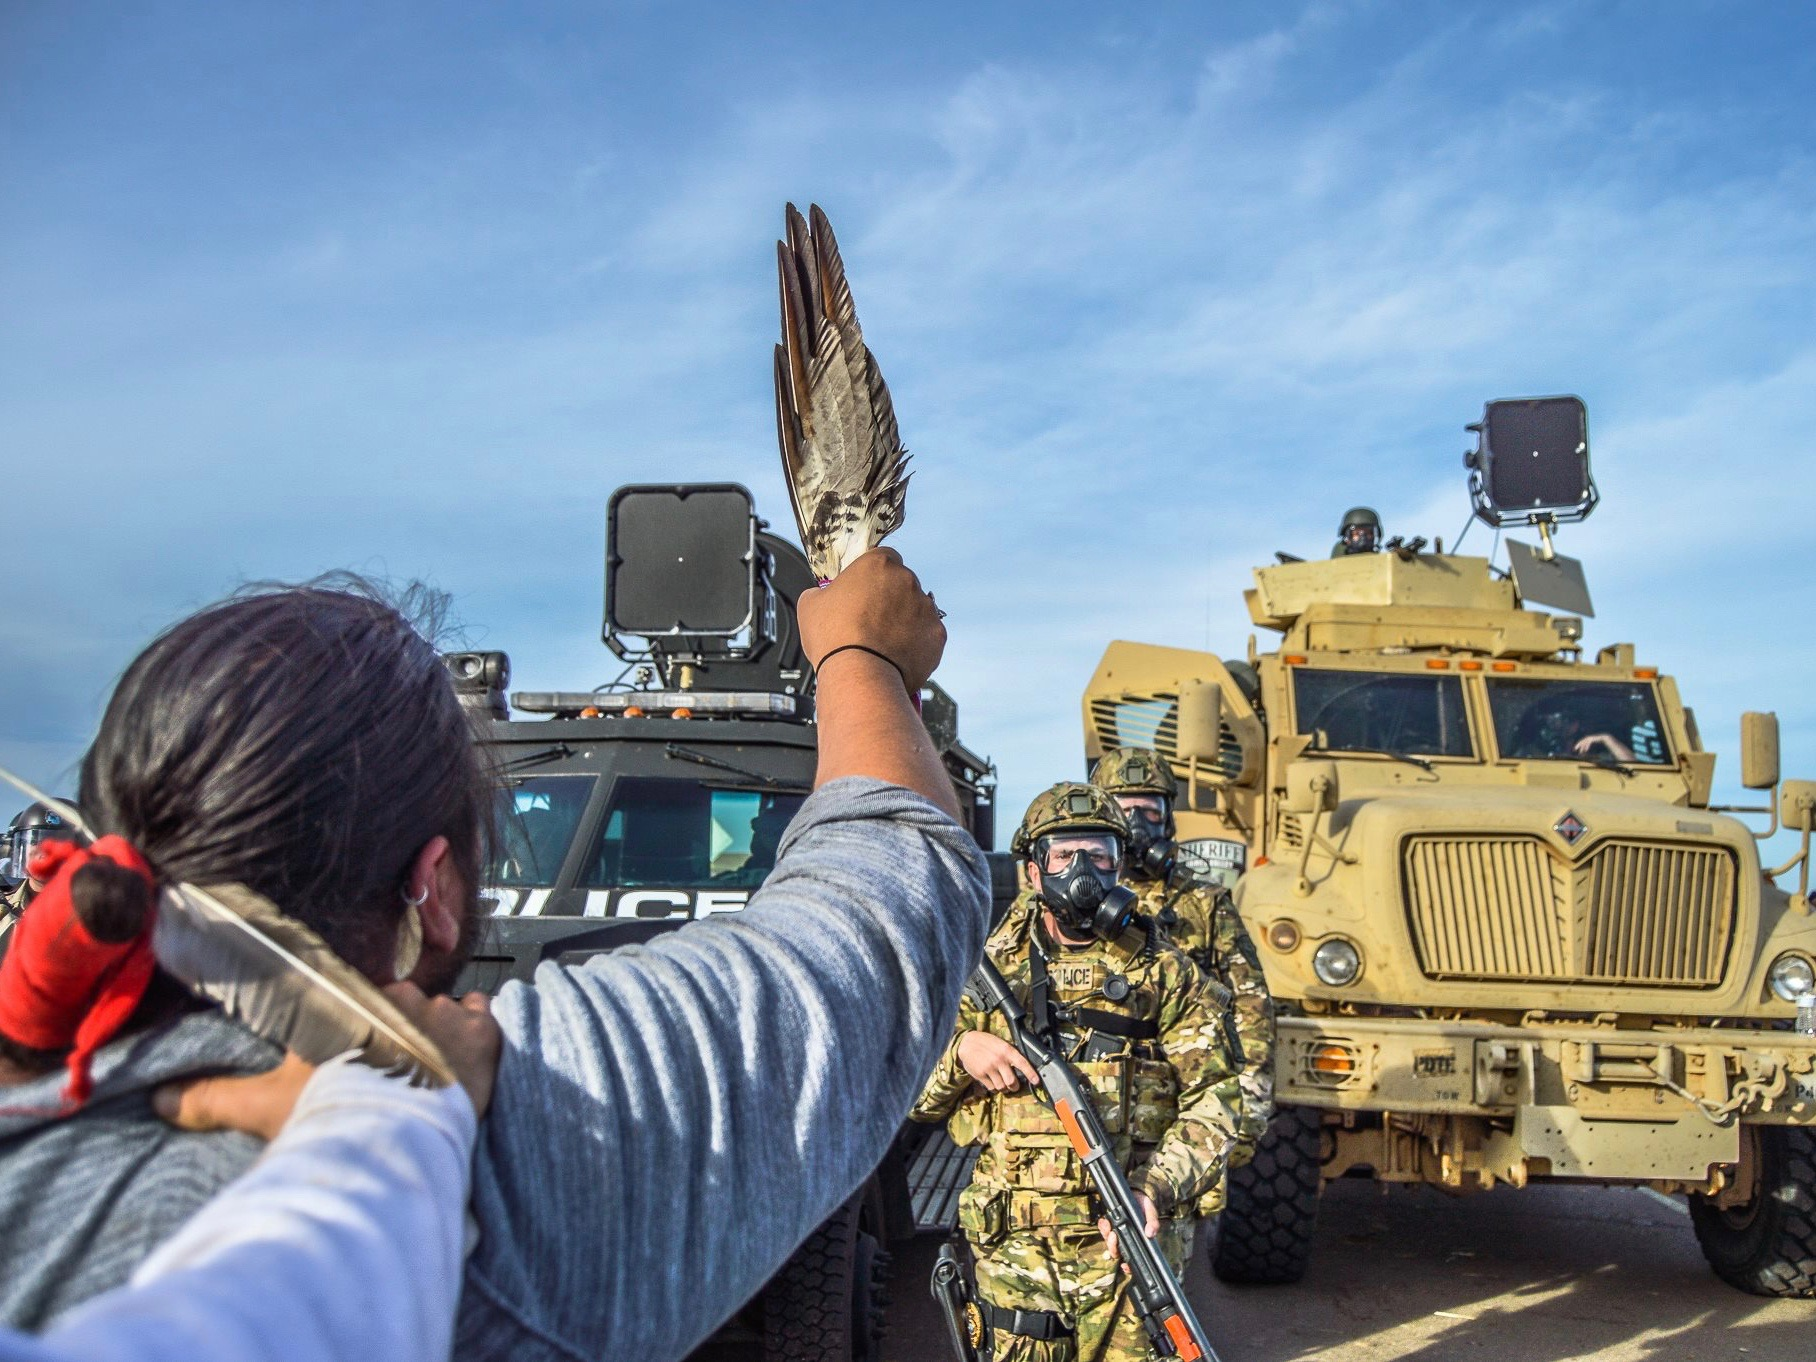 Winona LaDuke, Ann Wright and Zoltan Grossman: Open letter to law enforcement and National Guard in North Dakota